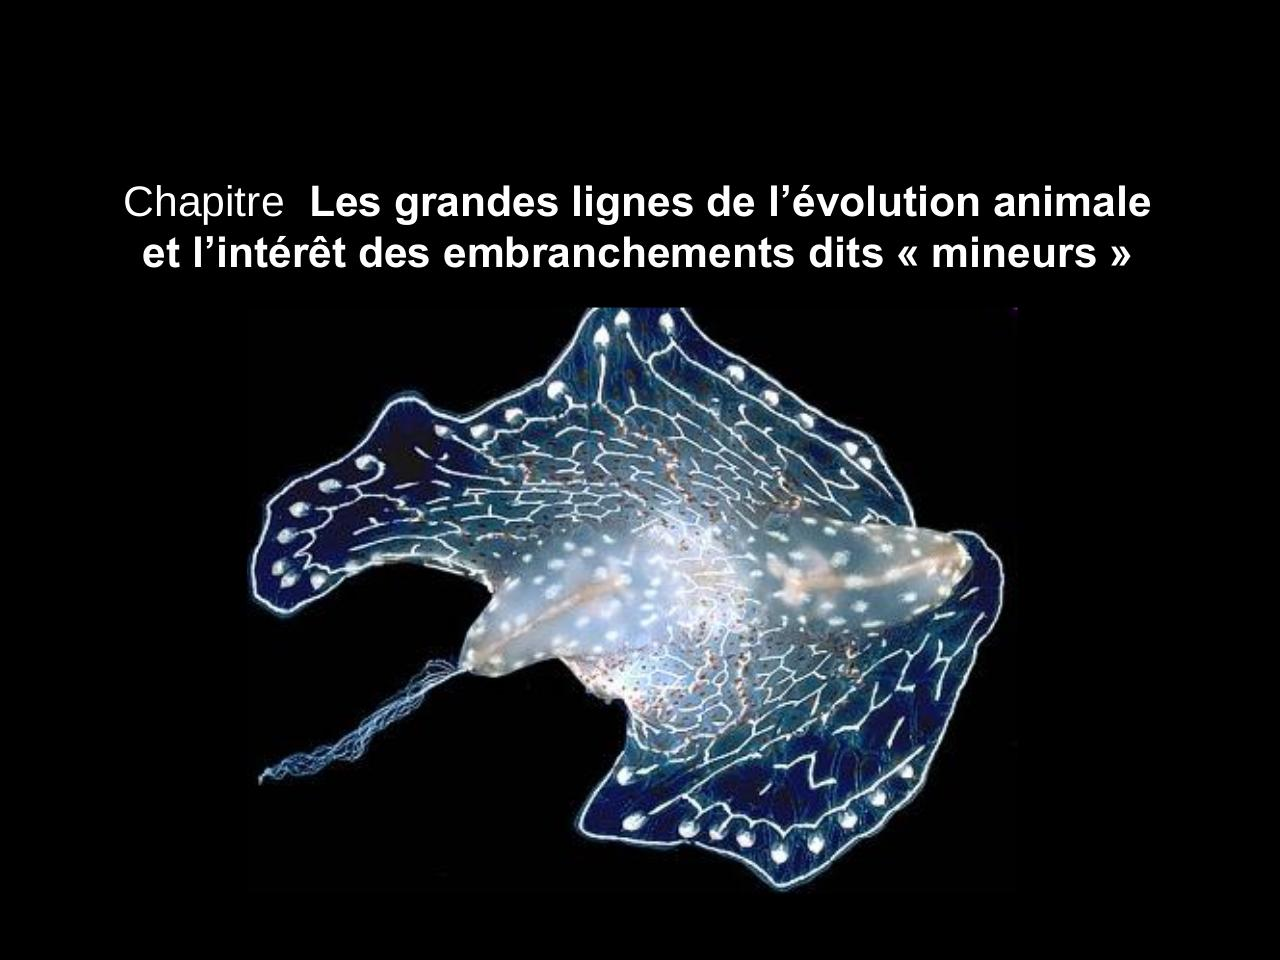 Cours complet Evolution animale et embranchements mineurs.pdf - page 1/111